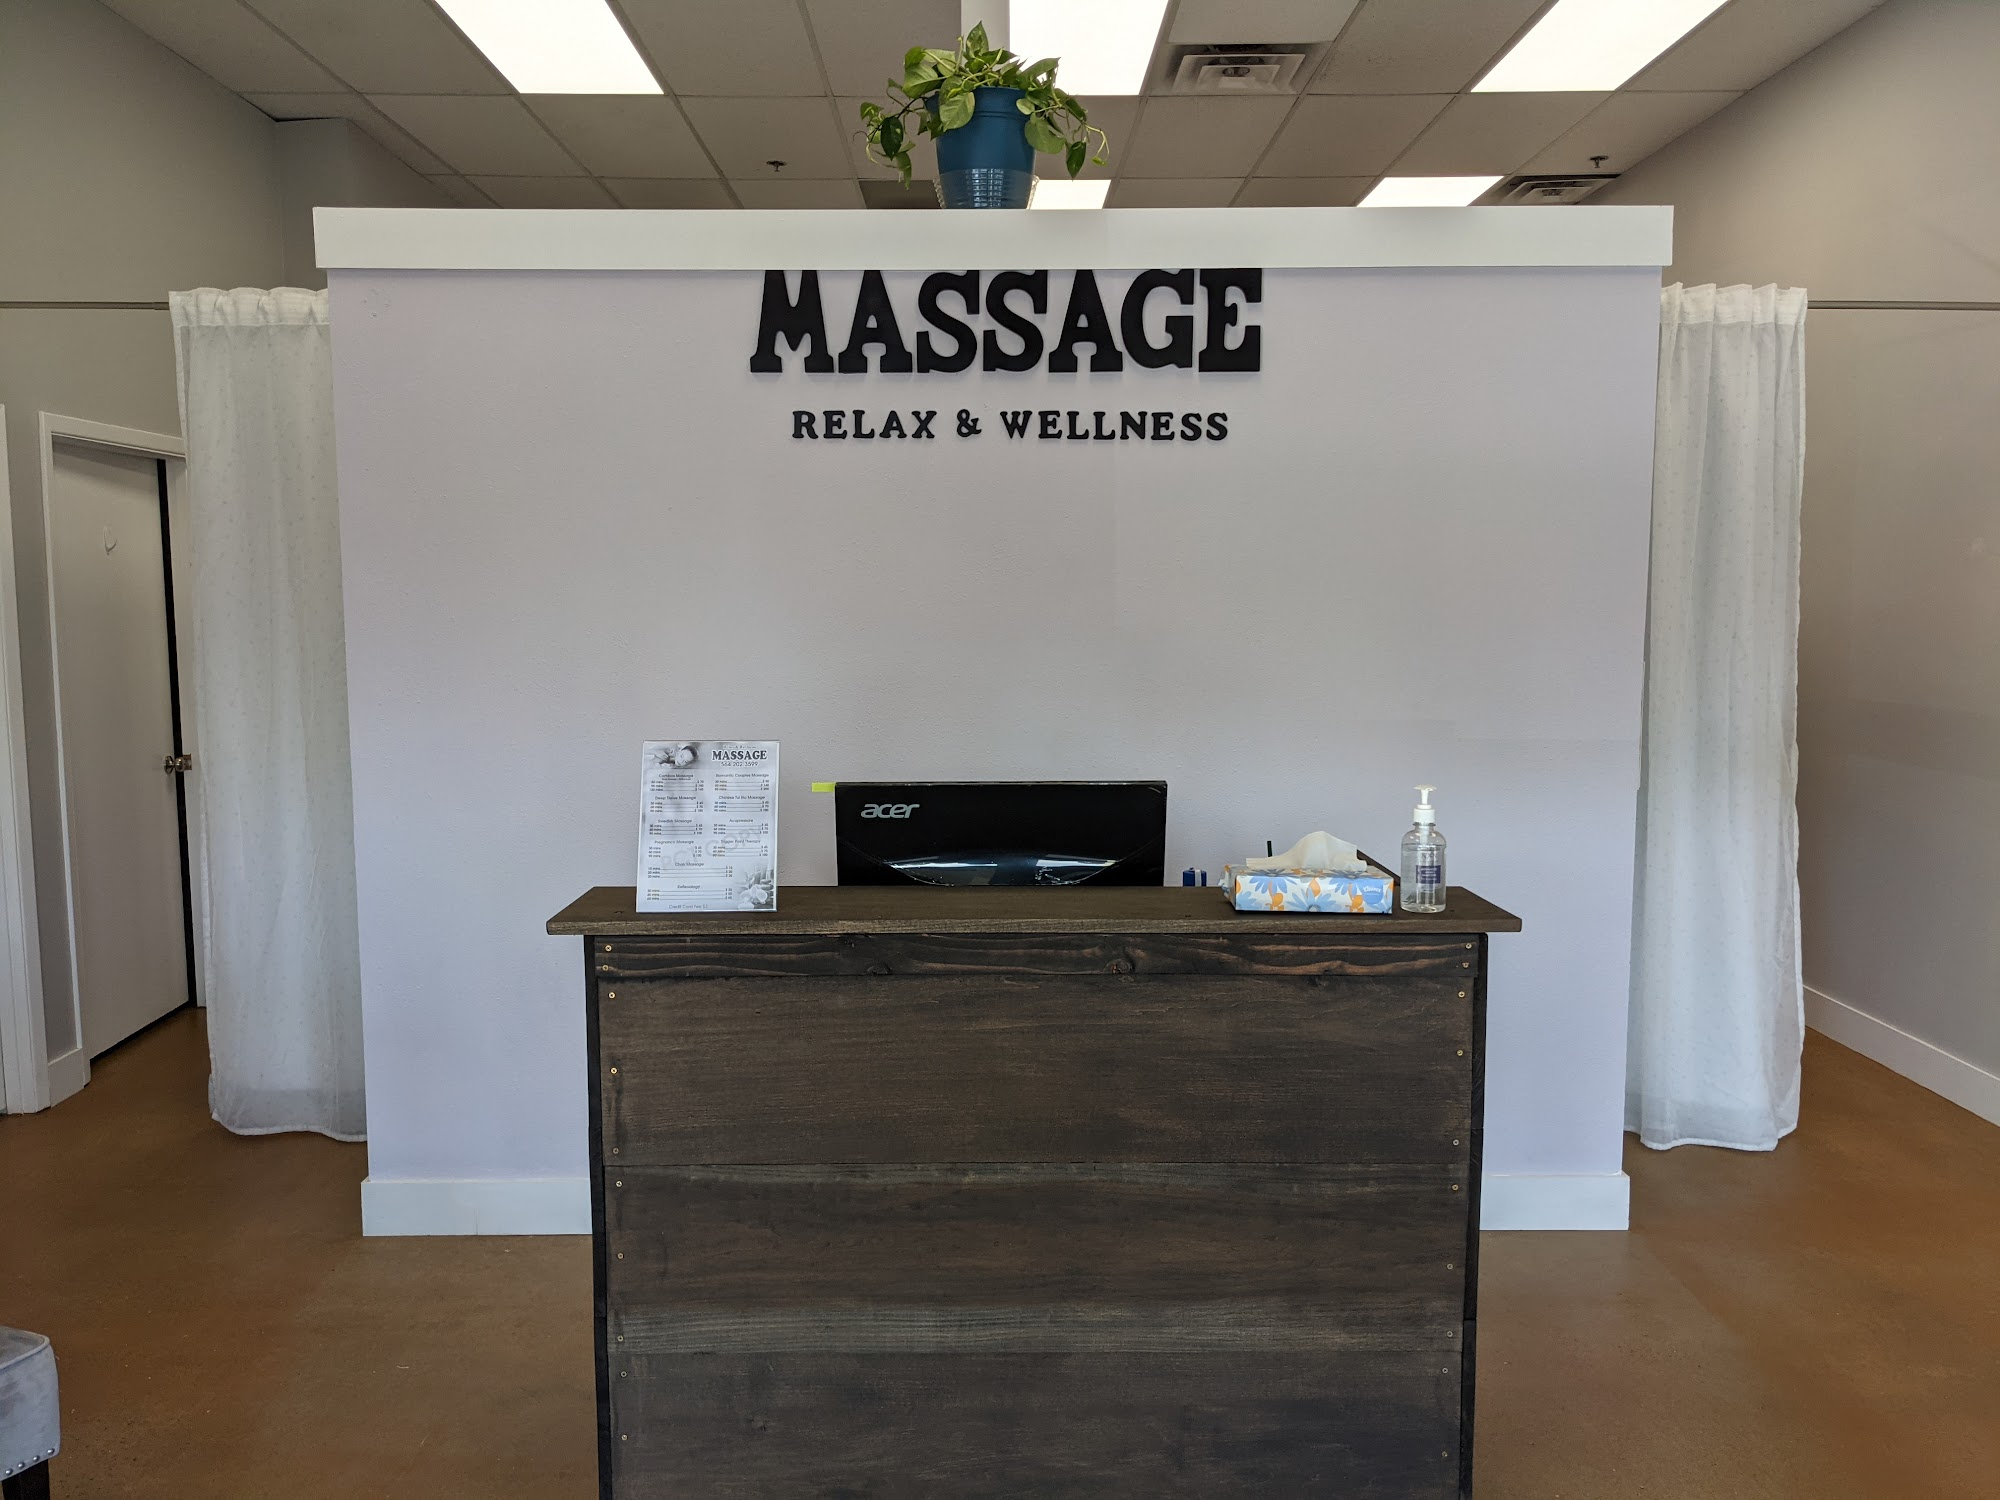 Relax and Wellness Massage 316 SE 123rd Ave suite D7, Vancouver